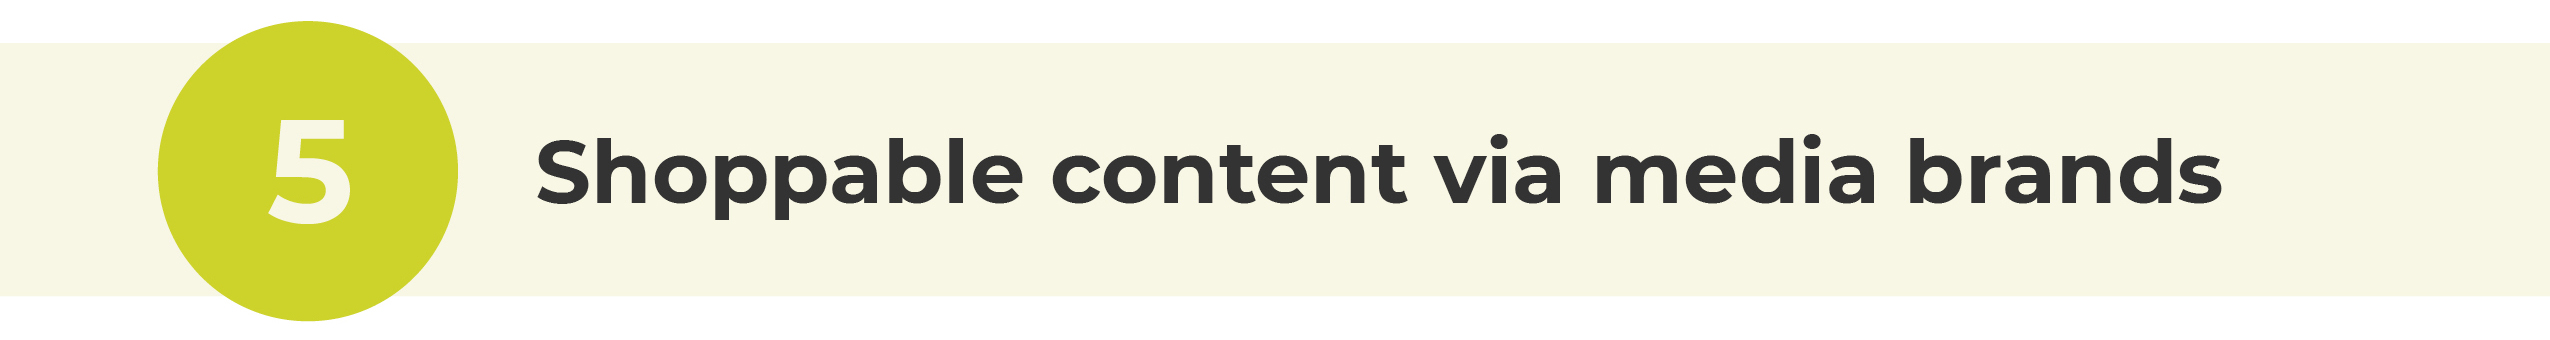 shoppable content